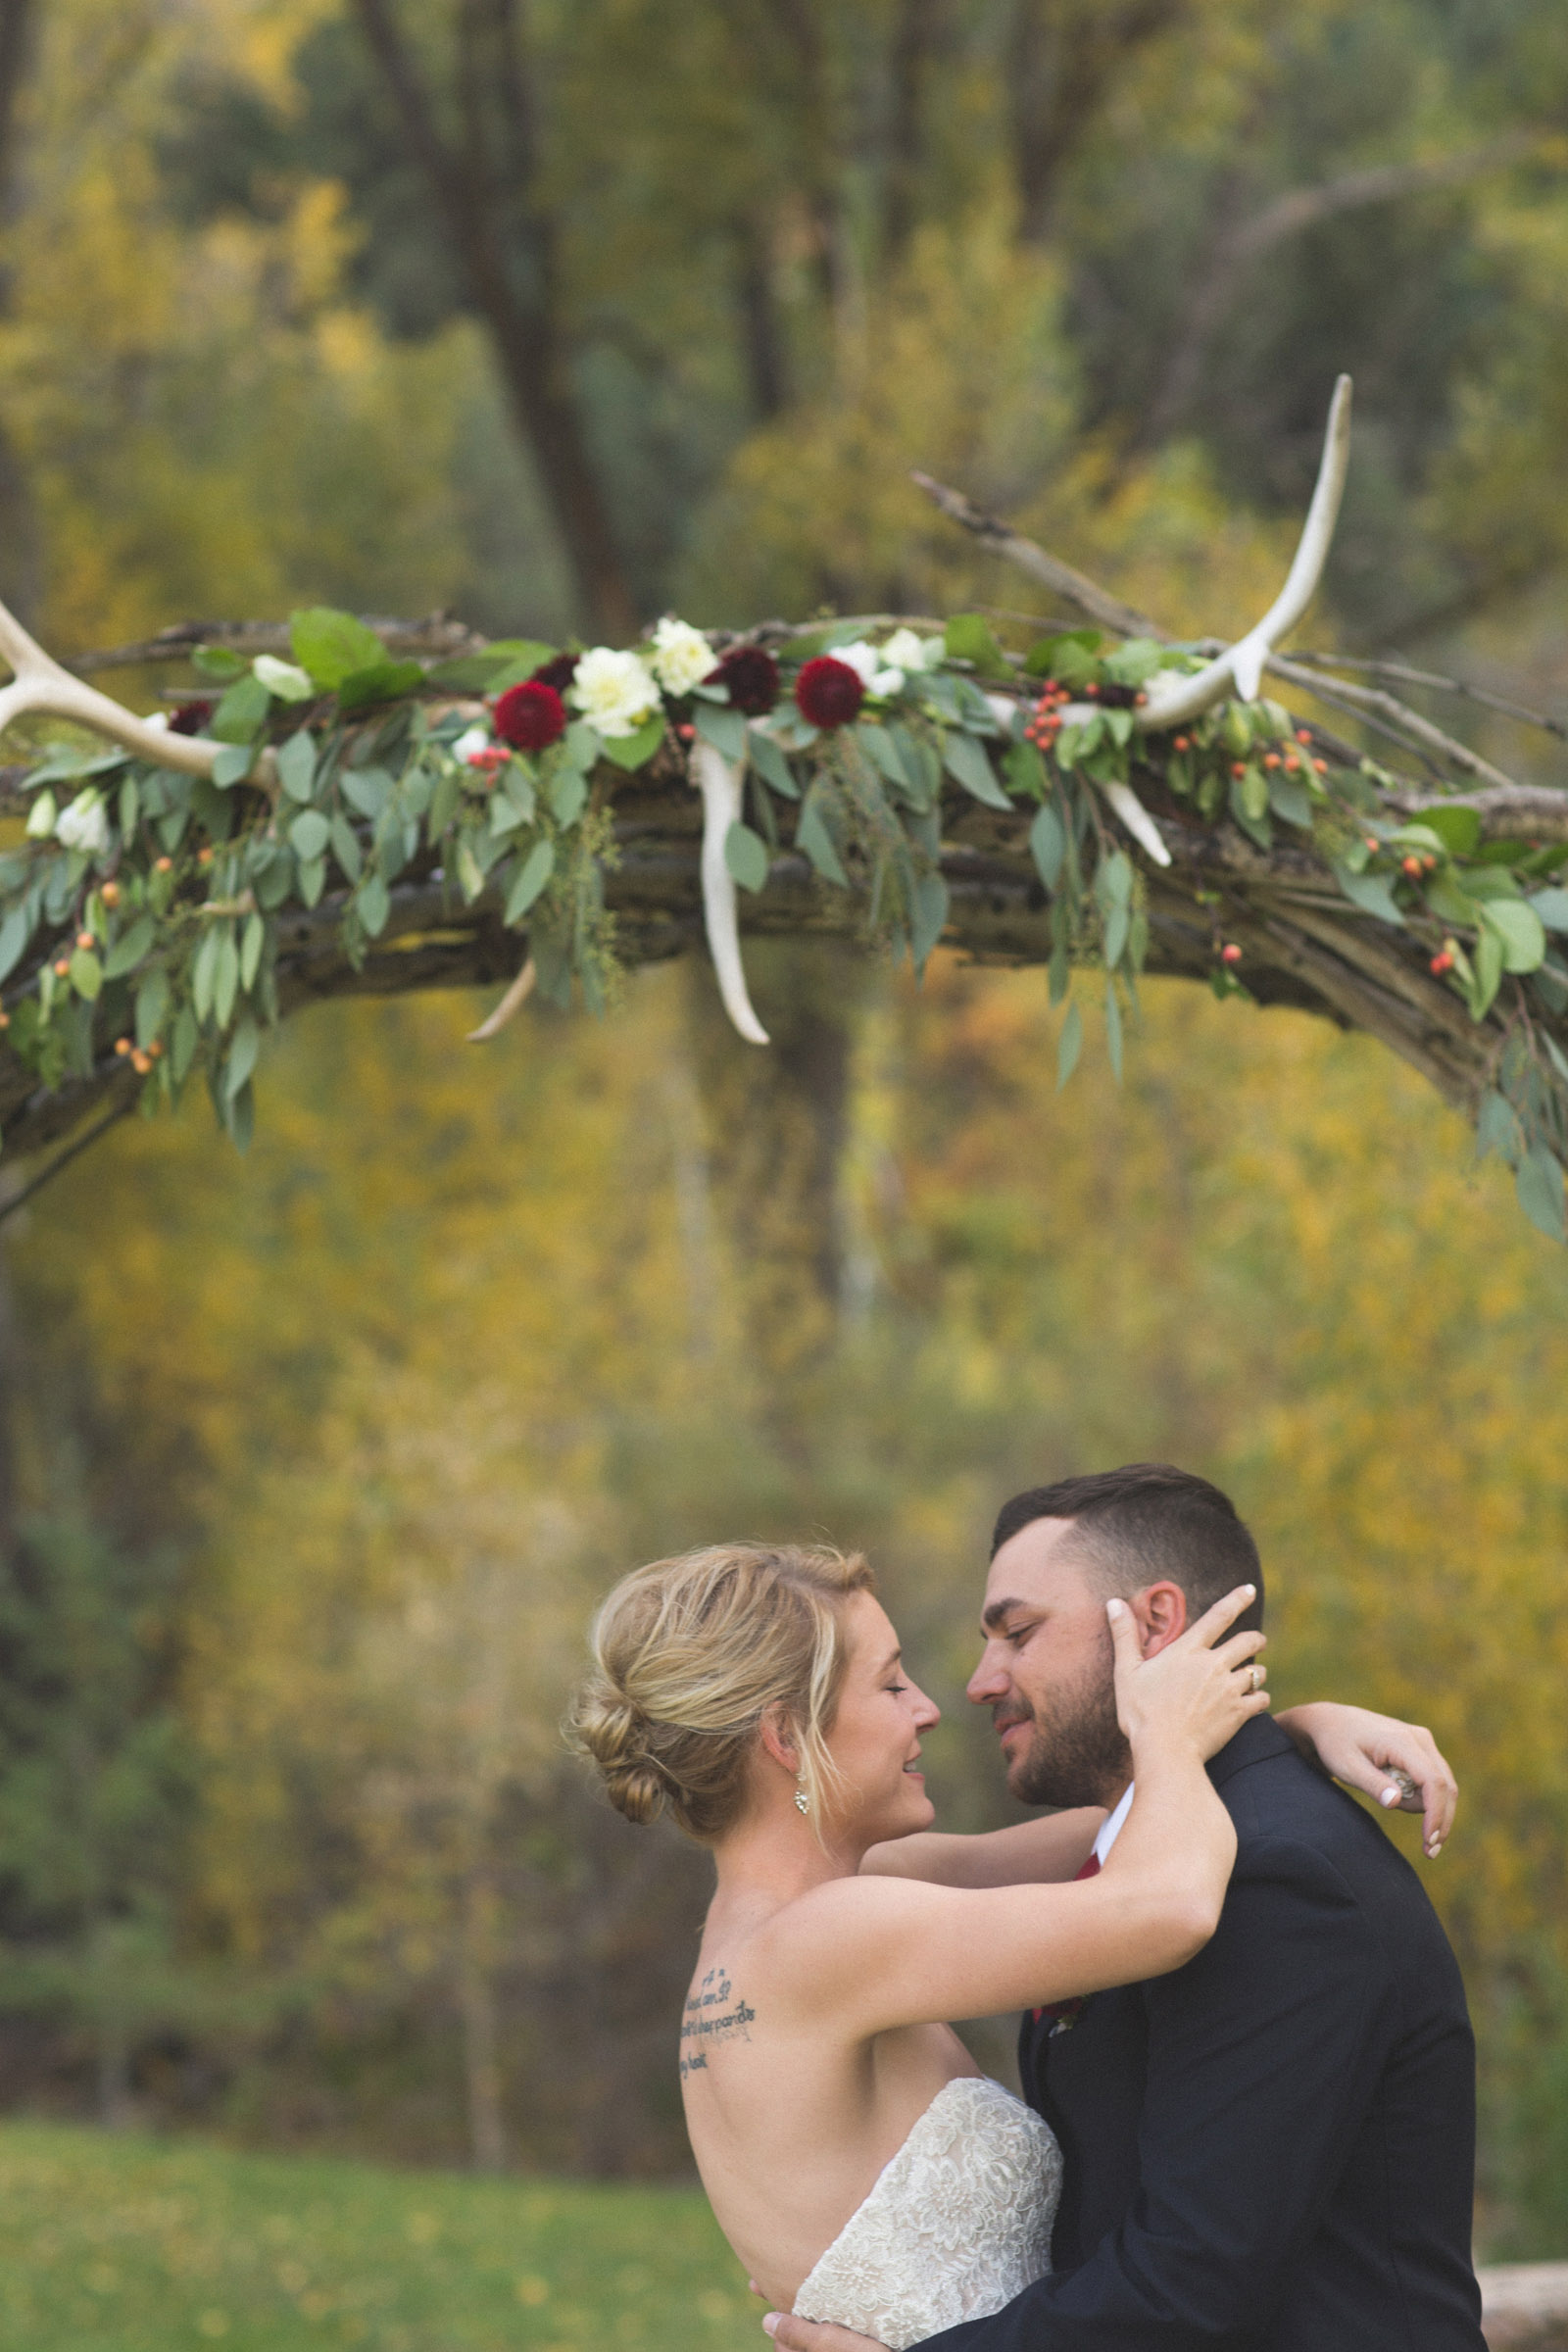 099-bride-and-groom-first-kiss-during-private-elopement-wedding-ceremony-in-durango-co-forest